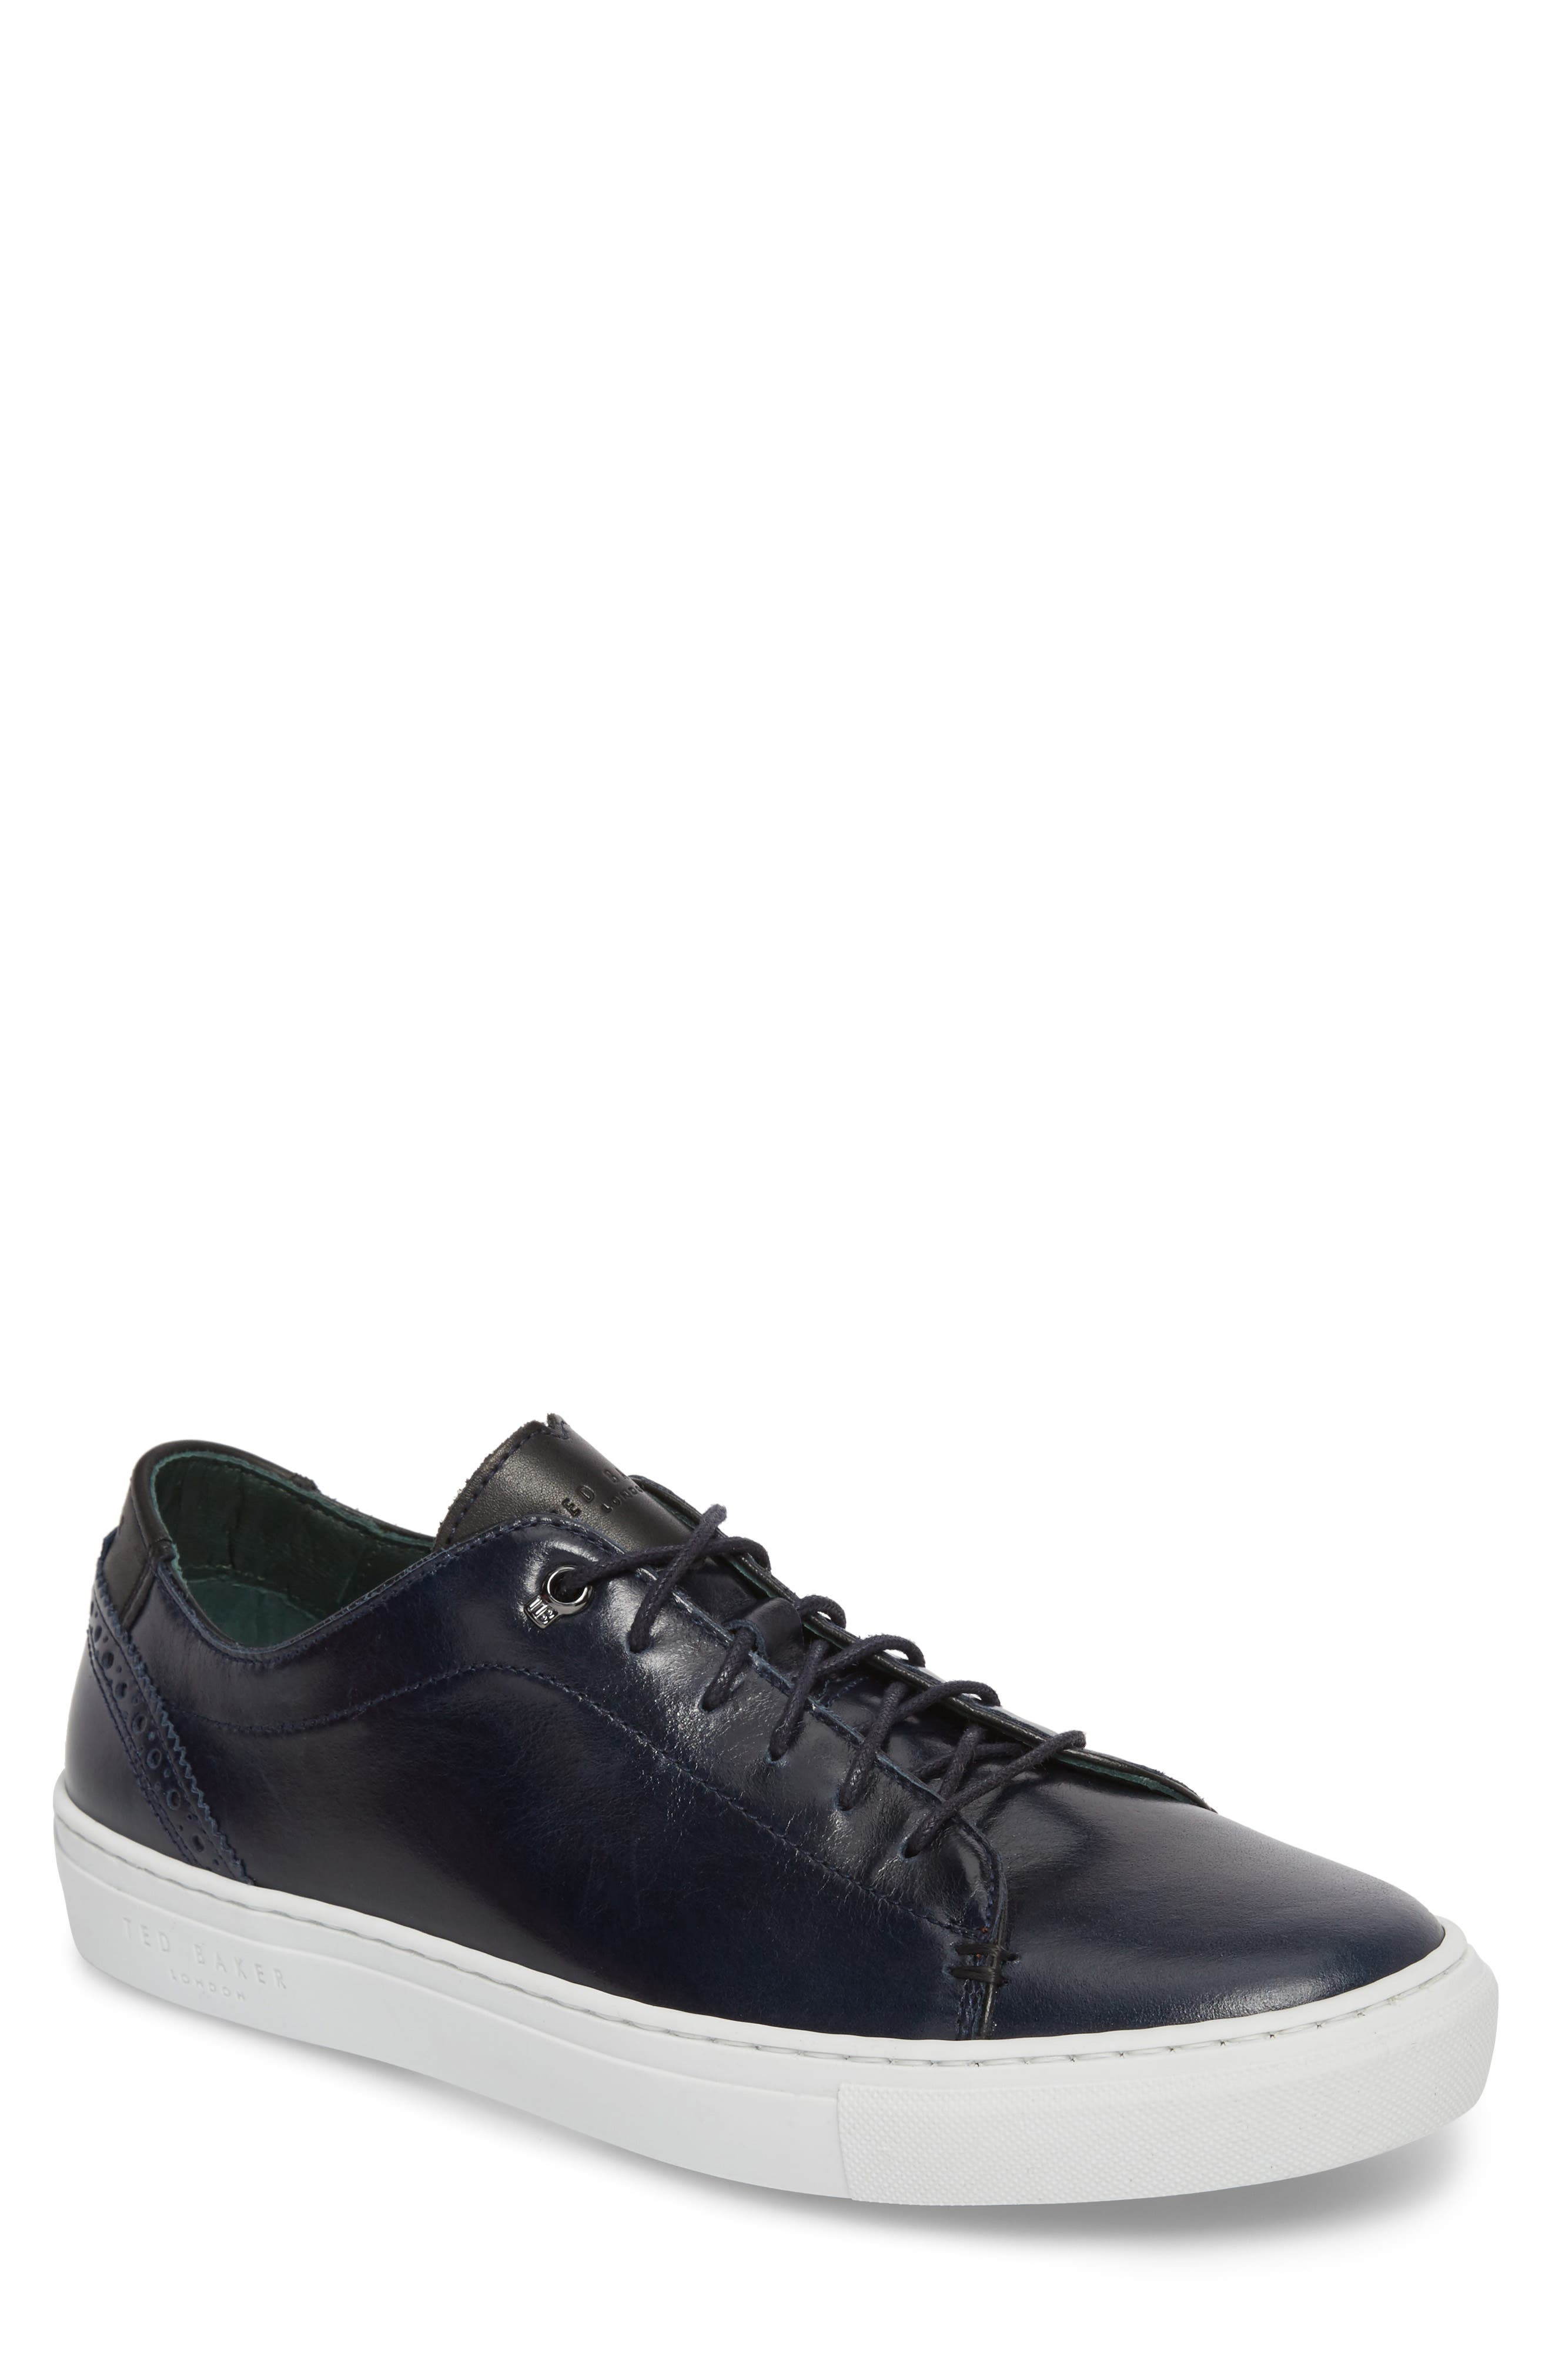 Duuke 2 Sneaker,                         Main,                         color, Midnight Blue Leather